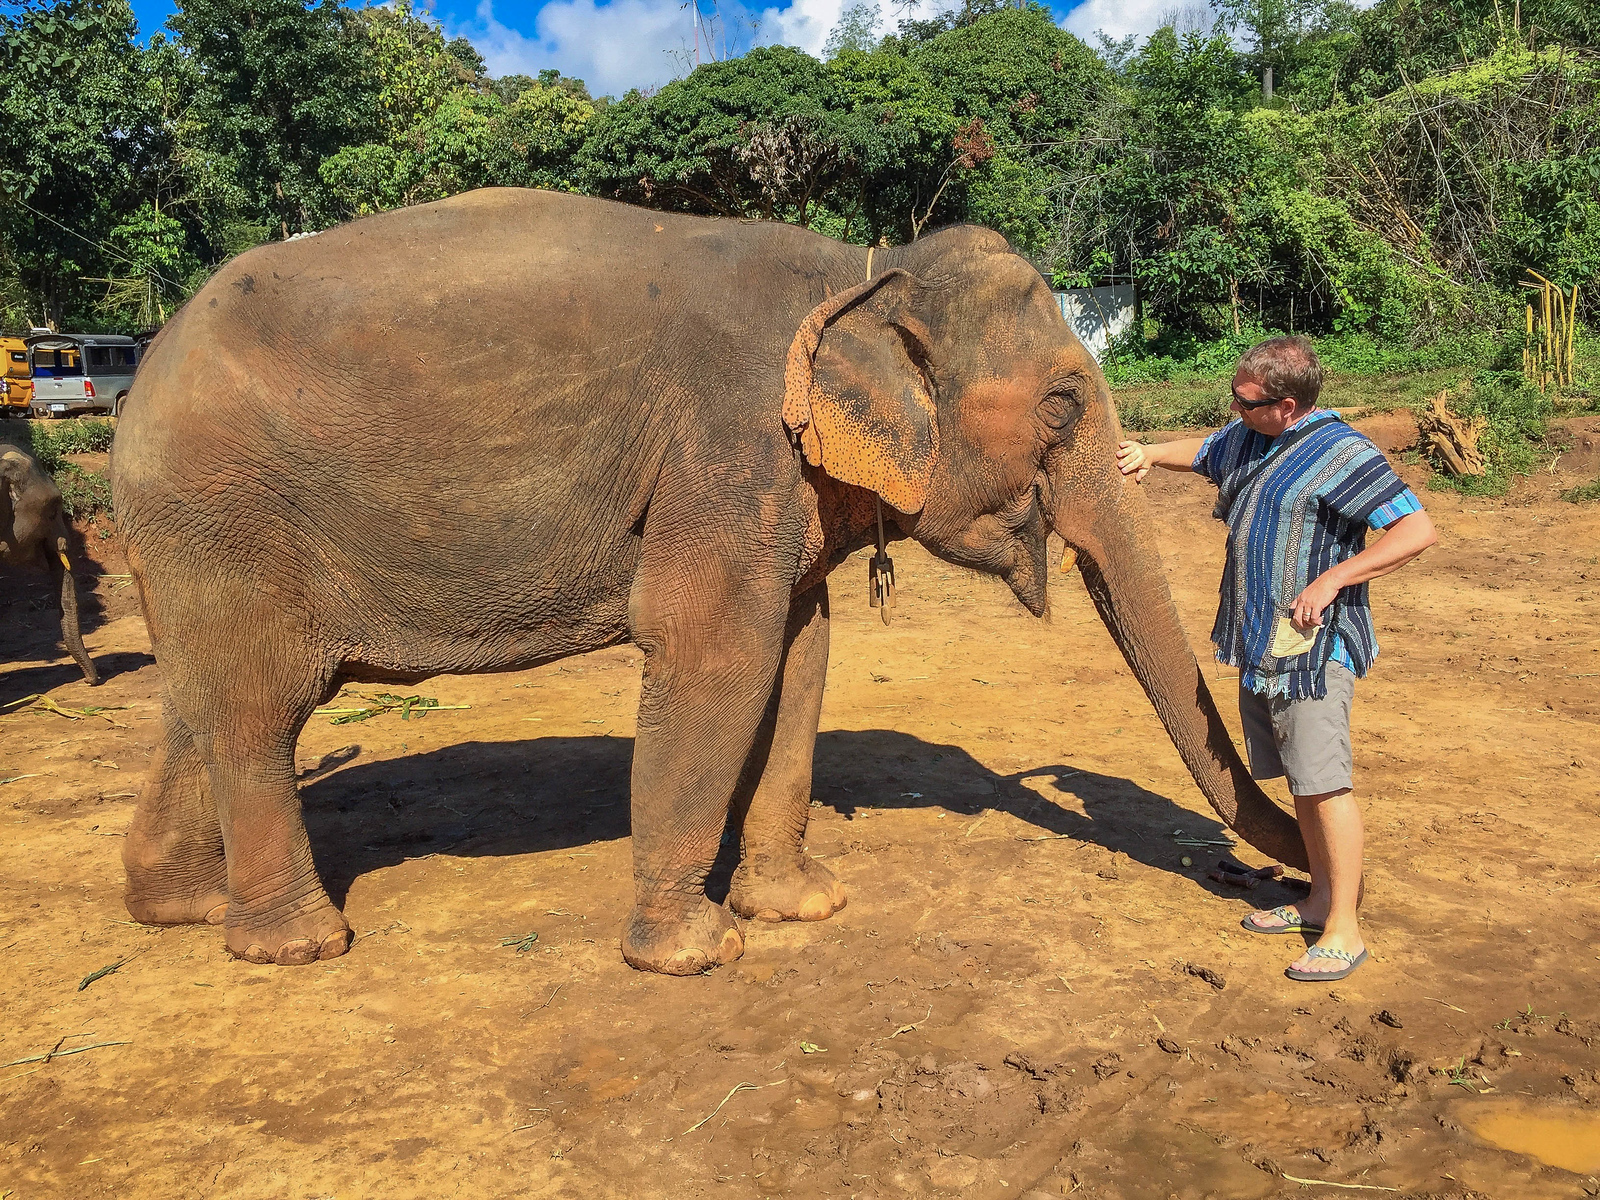 These are not wild elephants at the Elephant Sanctuary Chiang Mai